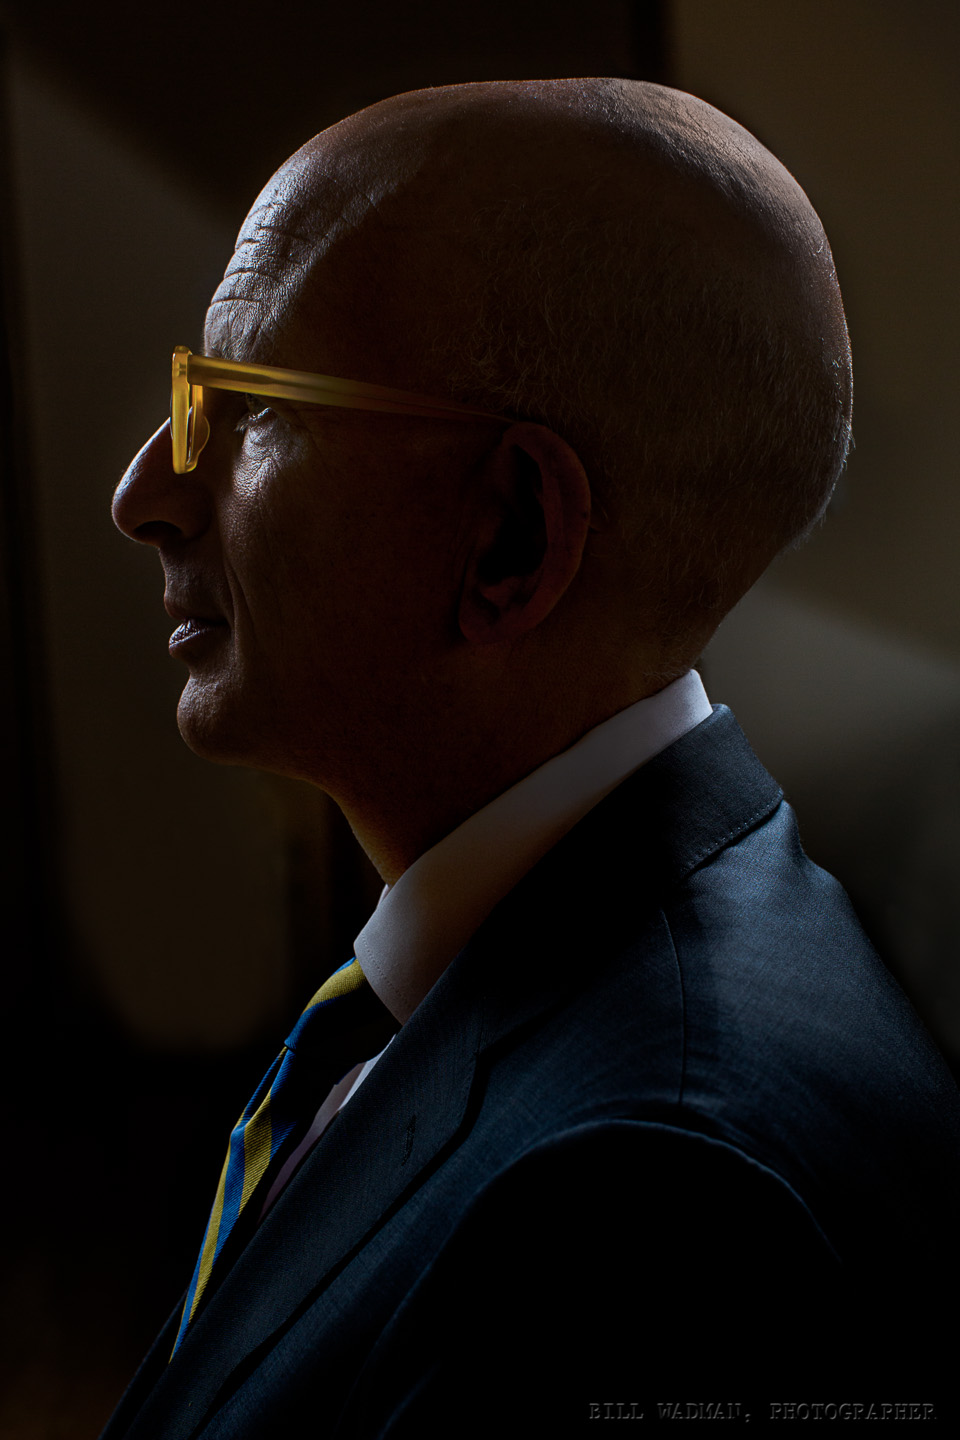 130808_SethGodin-177-Edit